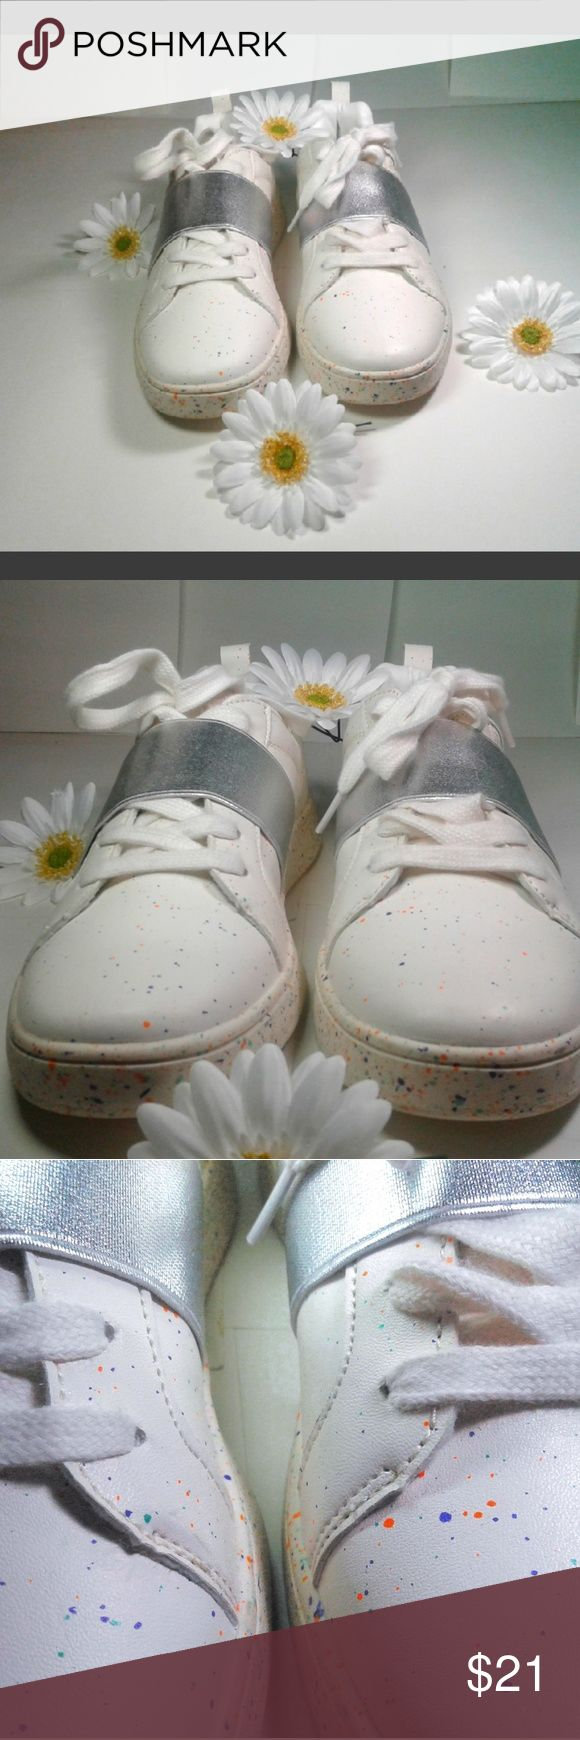 Woman Sneakers Limited Edition 5,7 These comfortable sneakers have a splash of dainty paint. The silver bans helps the laces keep in place and shoes are really comfortable. Perfect for the on the go woman. primark Shoes Sneakers